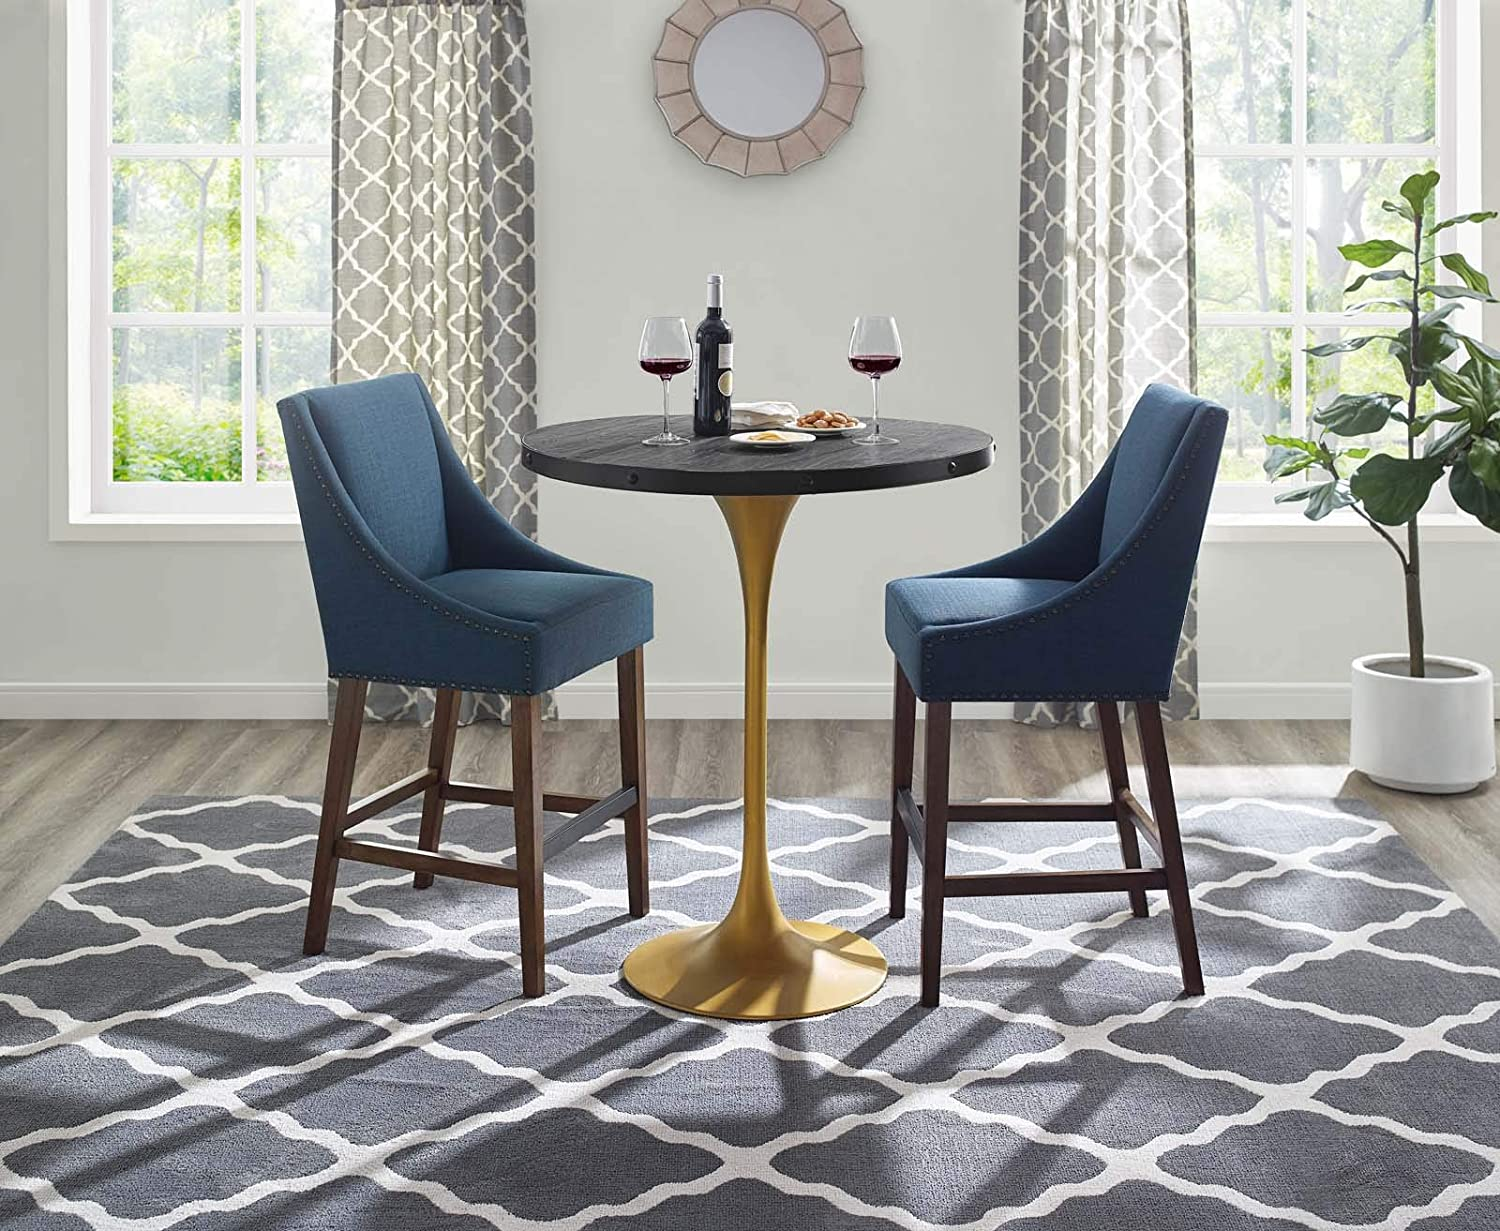 Amazon Com Modway Drive 36 Modern Farmhouse Dining Table With Round Pine Black Wood Top And Gold Steel Base In Black Gold Tables